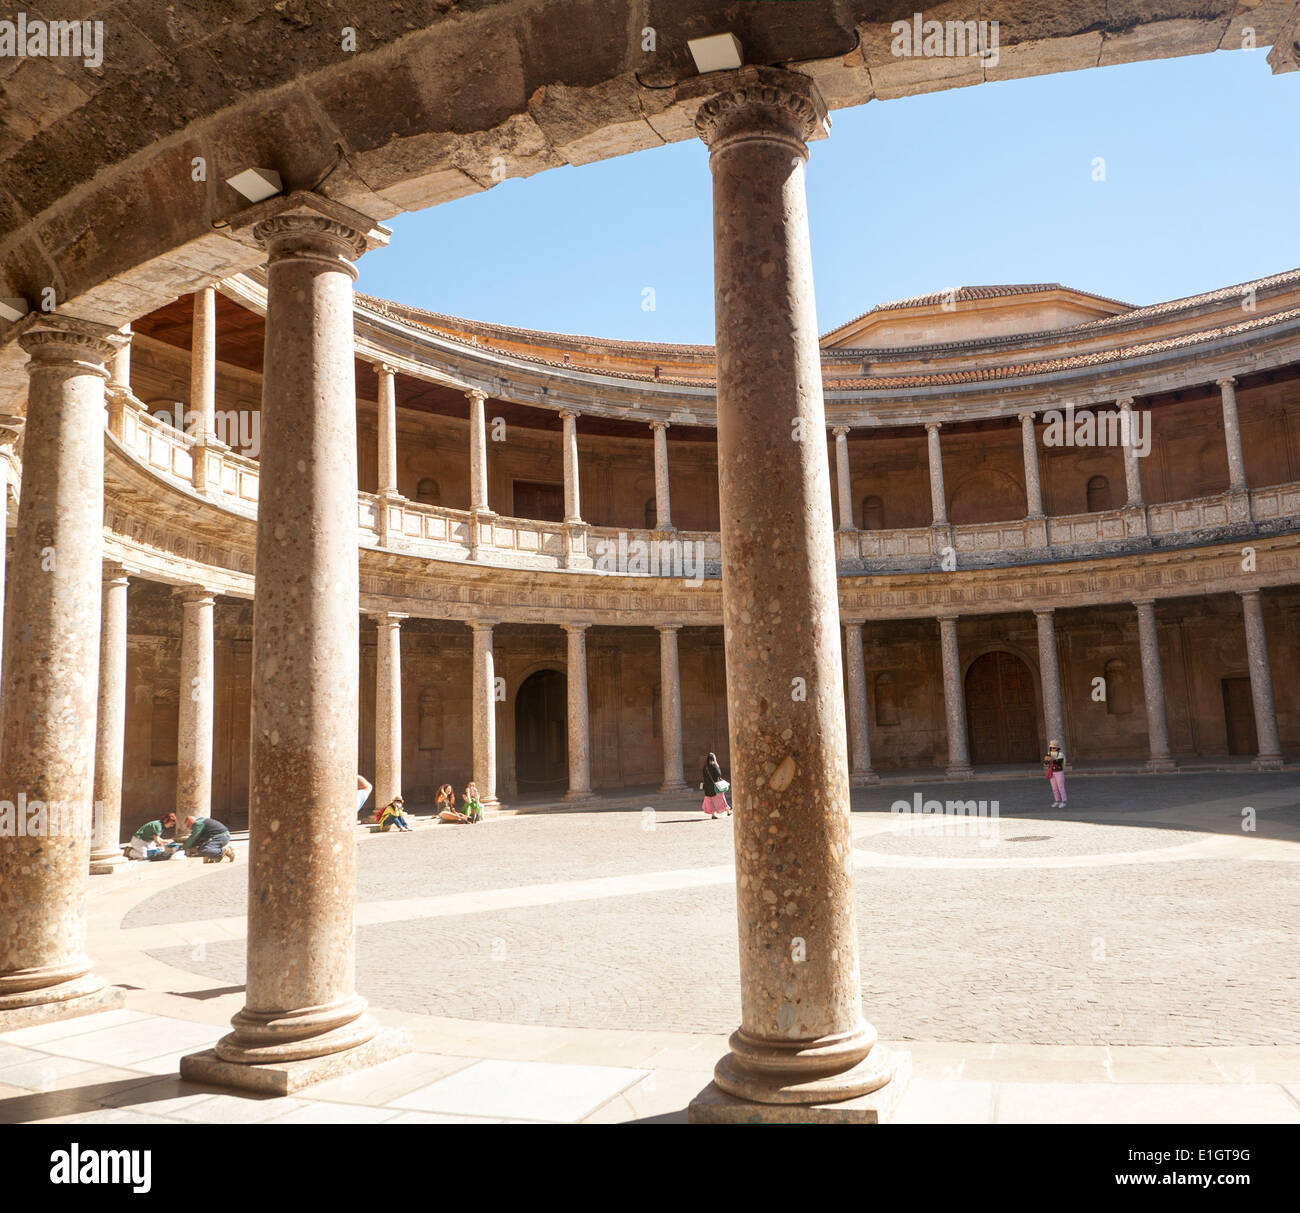 Courtyard inside the Palacio de Carlos V, Palace of Charles V Stock Photo, Ro...